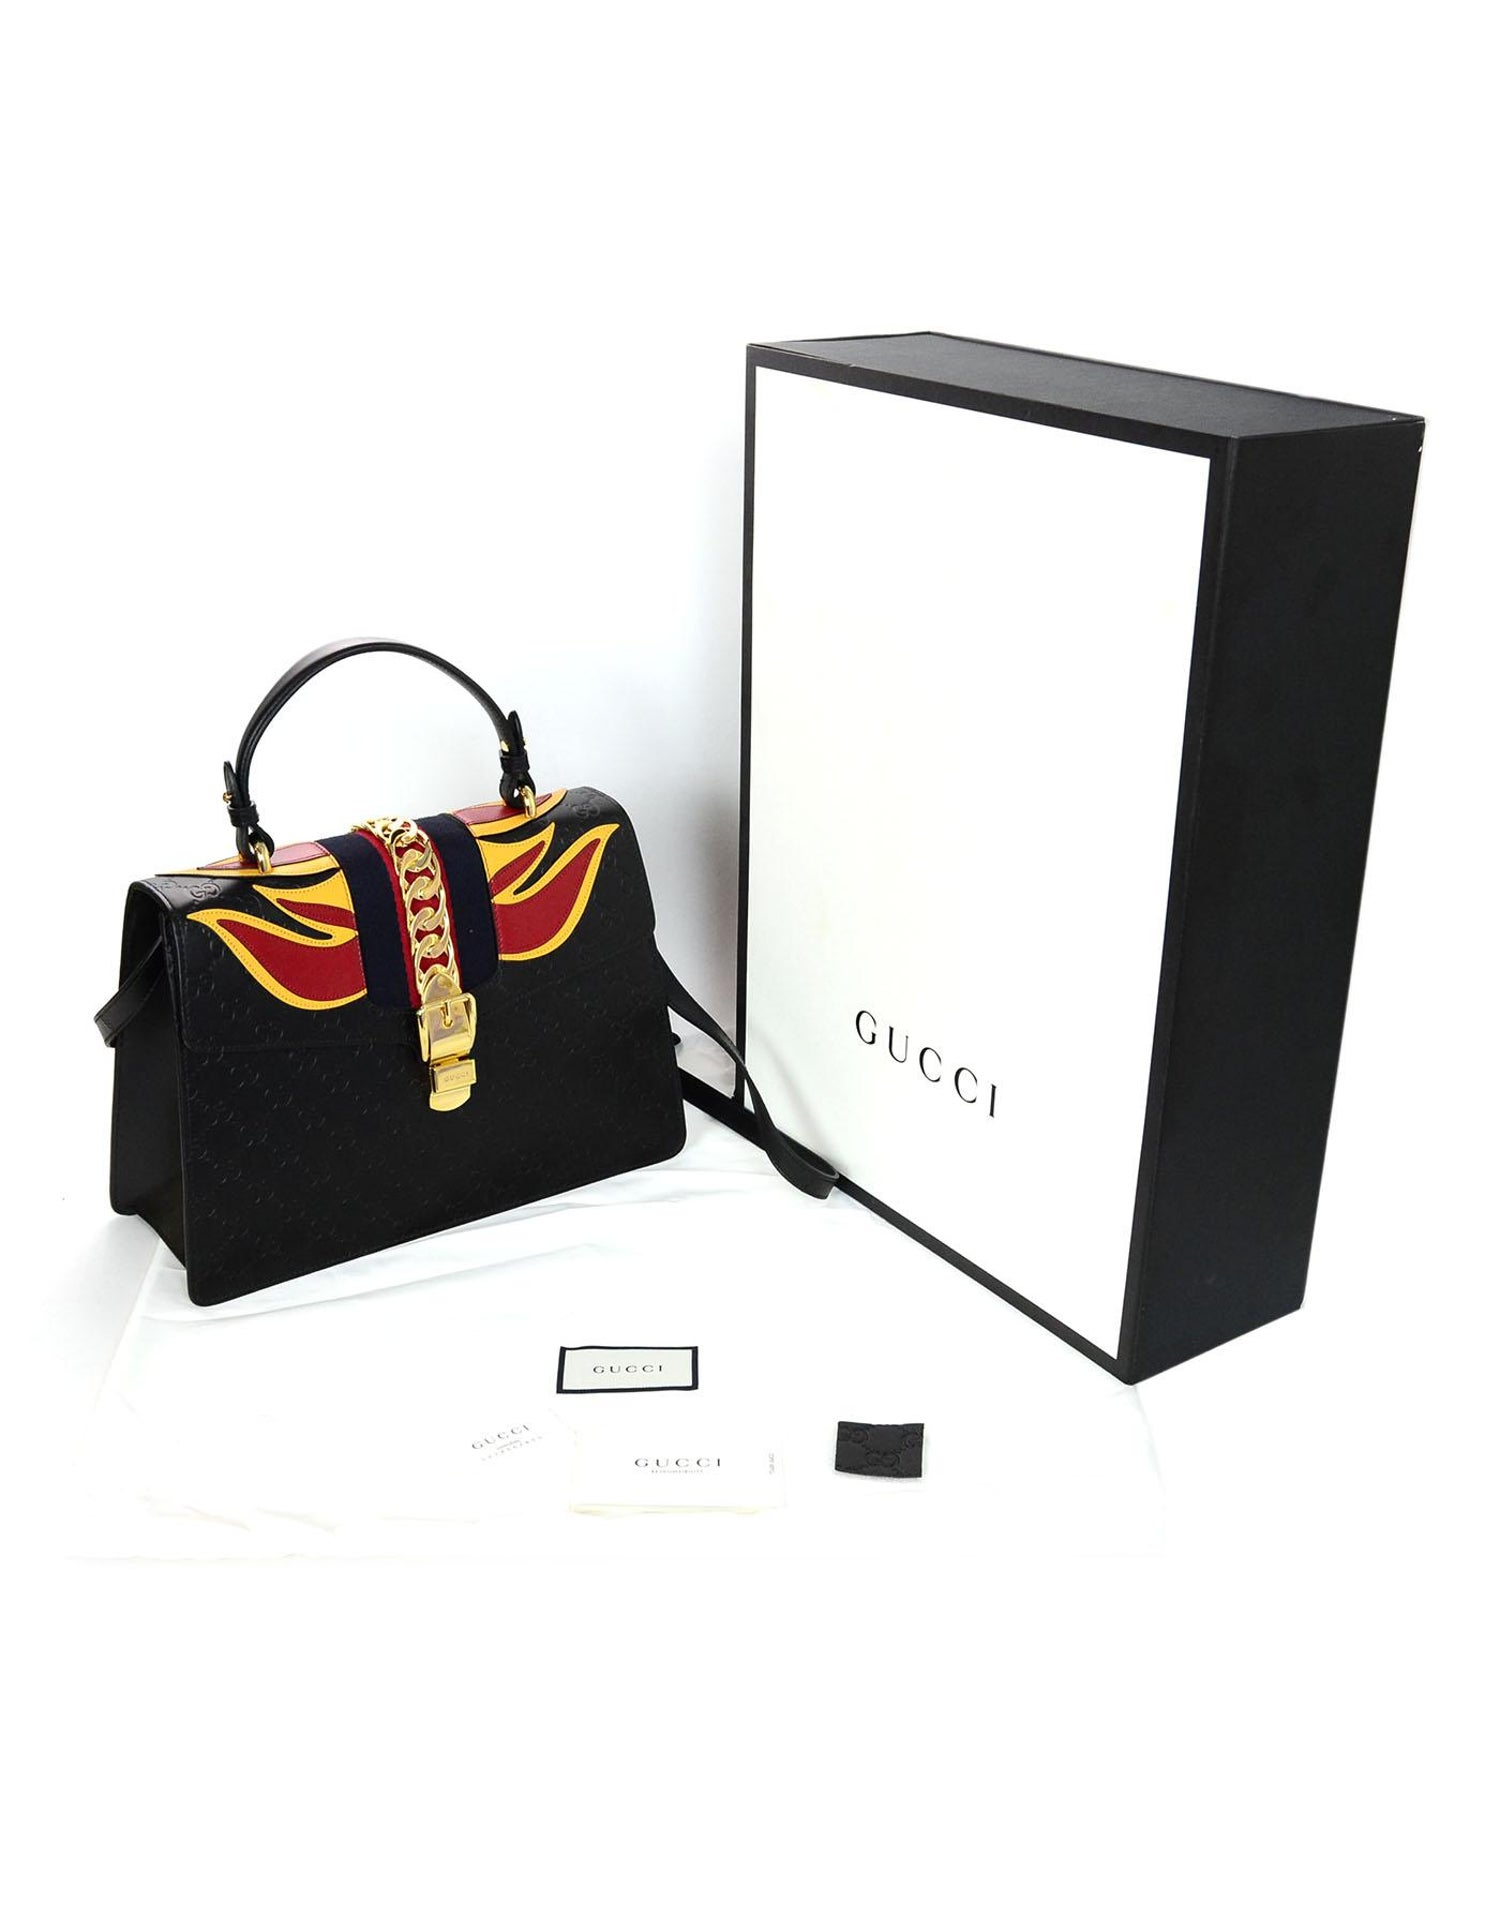 caa0b636af0e05 Gucci Black Leather Monogram Guccissima Medium Sylvie Flame Bag at 1stdibs